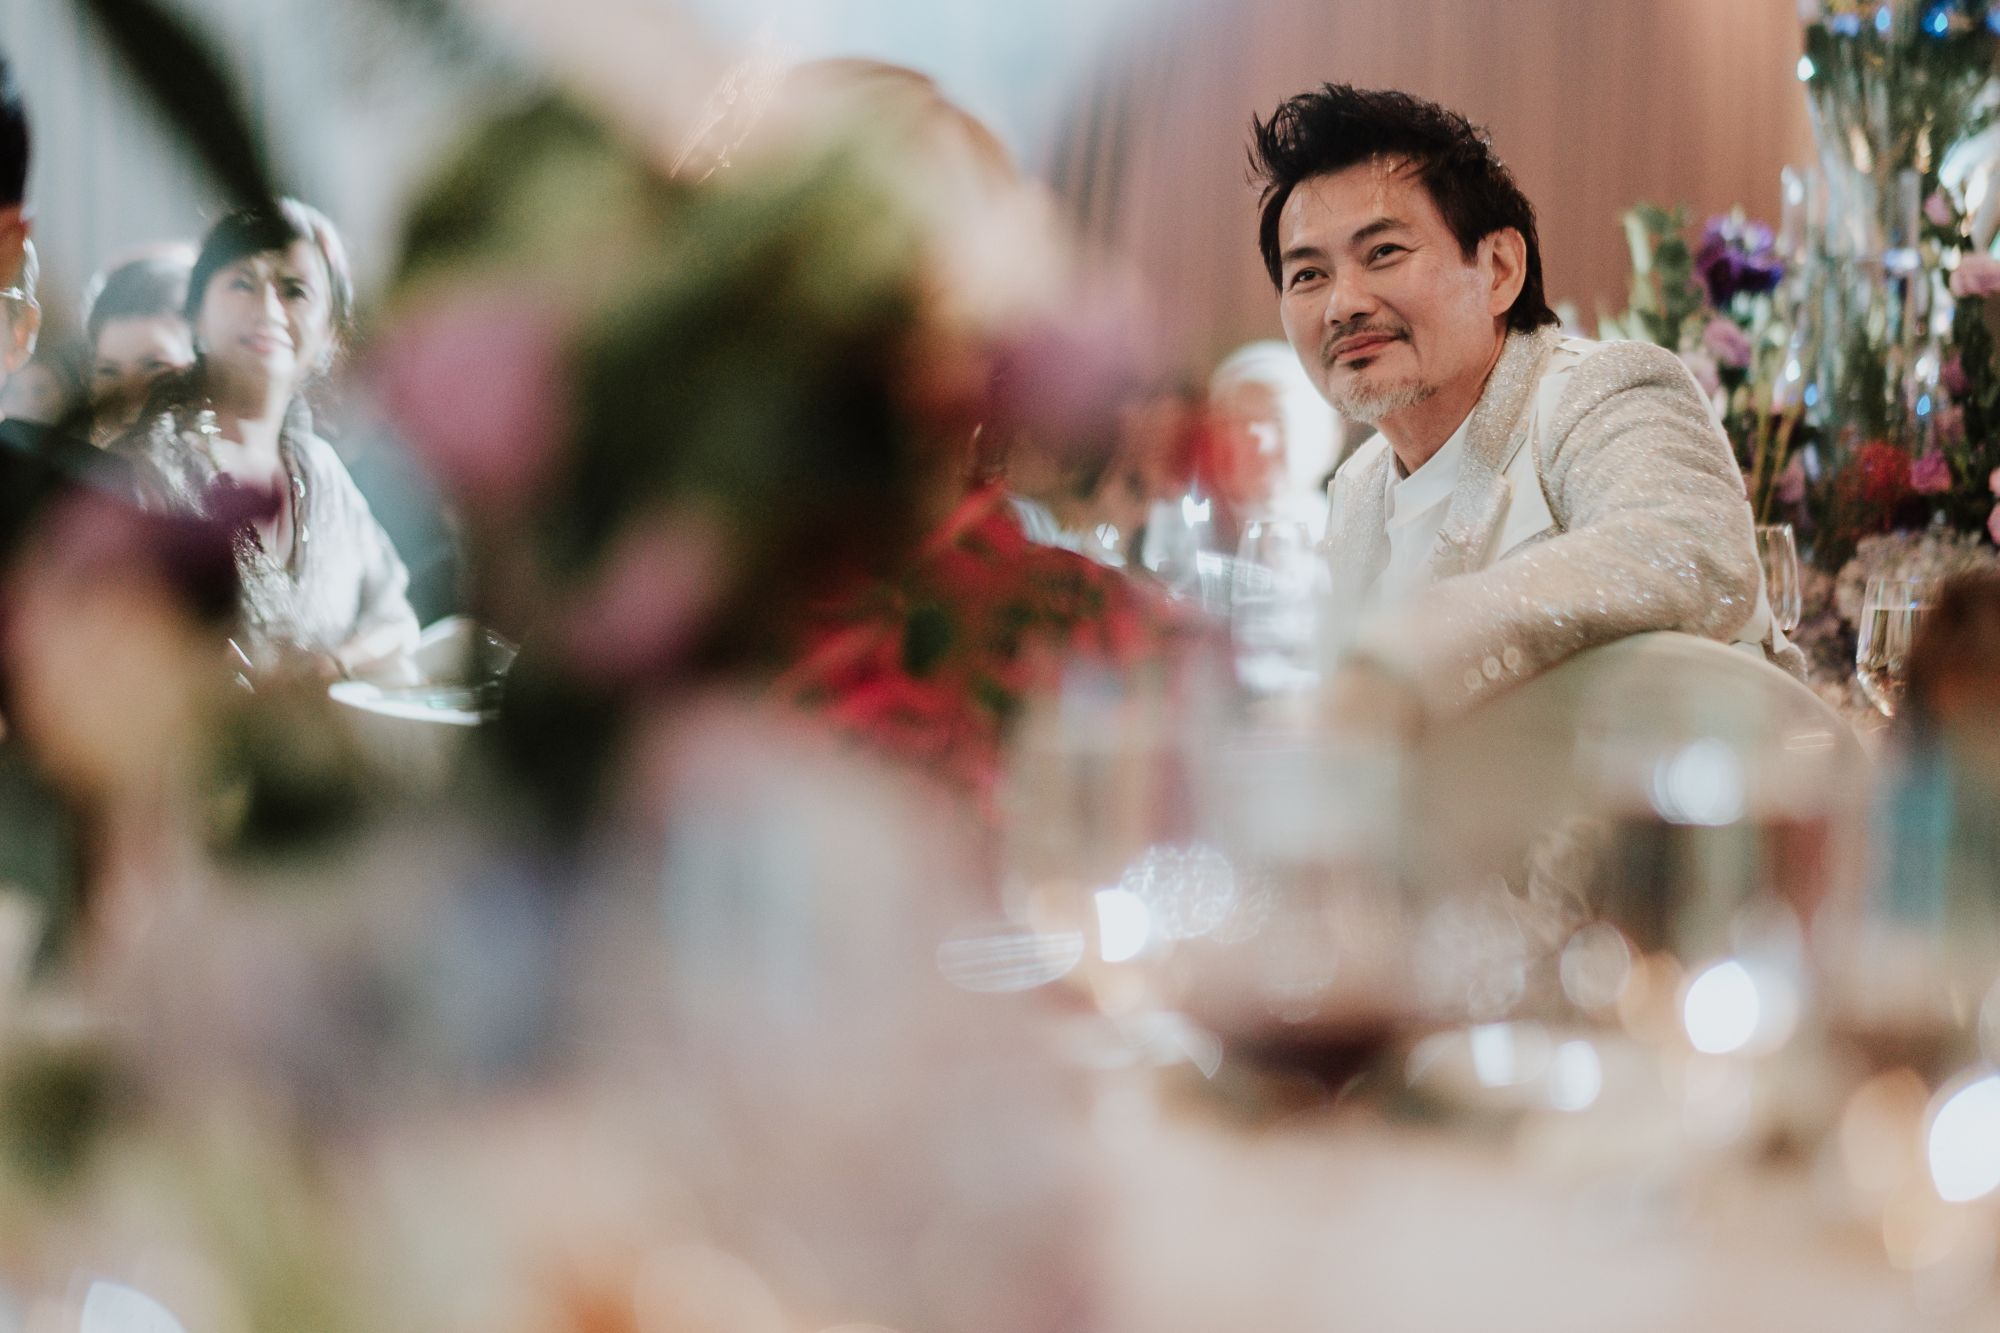 Watch: Get to Know Mervin Wee, the Grandfather With Impeccable Style in 'Remarkable Living', a Singapore Tatler x CNA Luxury TV Series